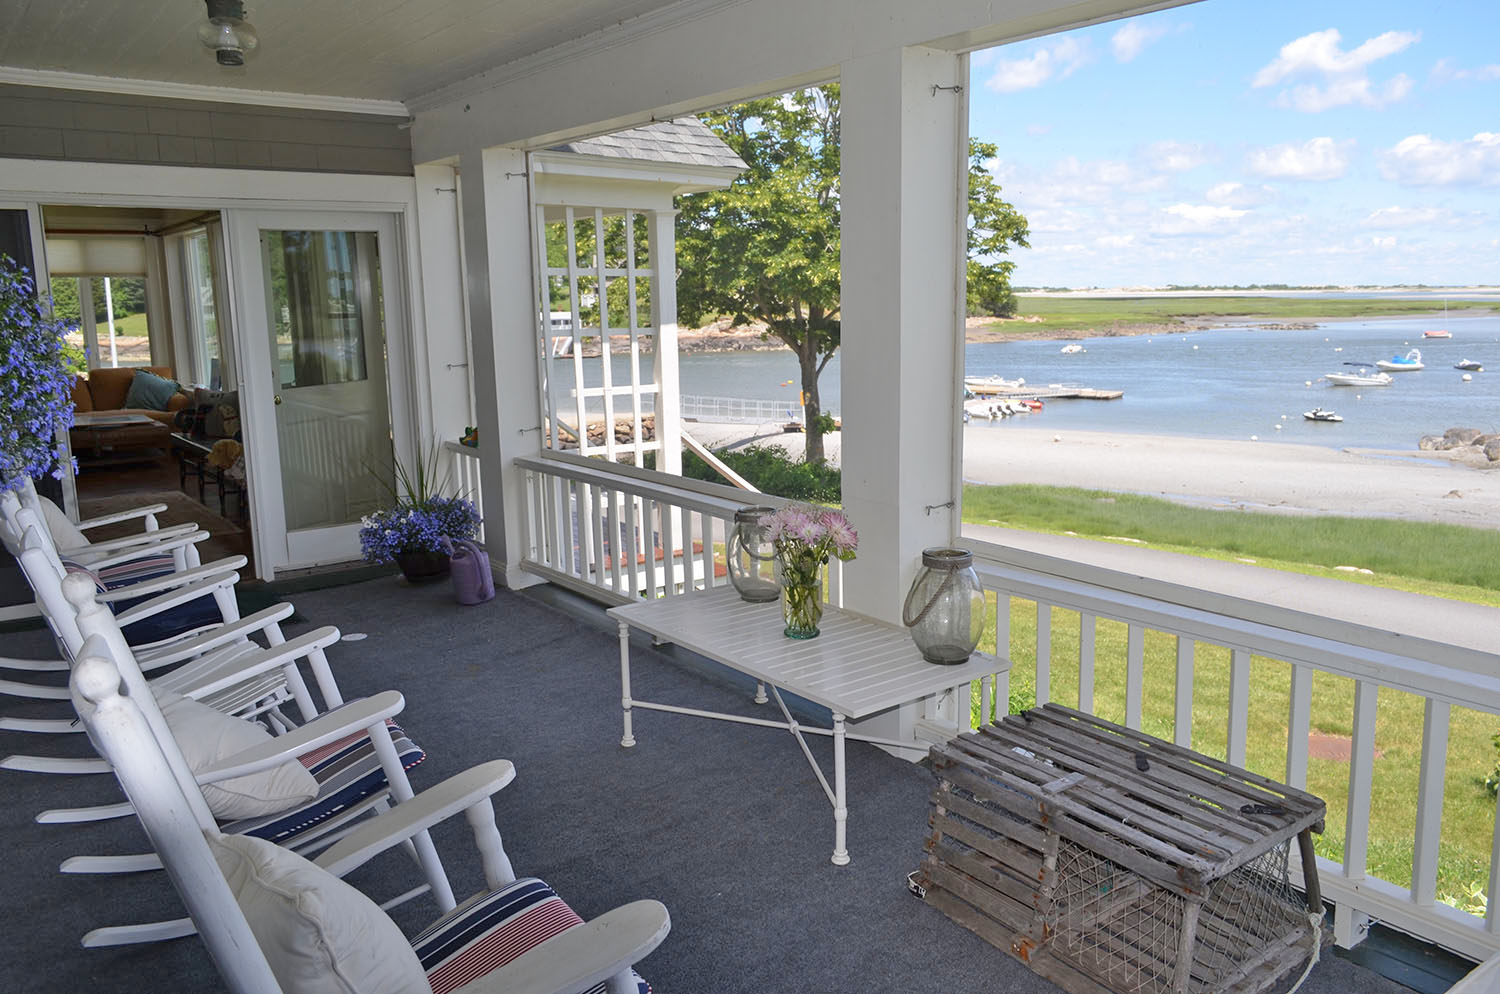 Water View Vacation Rentals - Atlantic Vacation Homes - Cape Ann